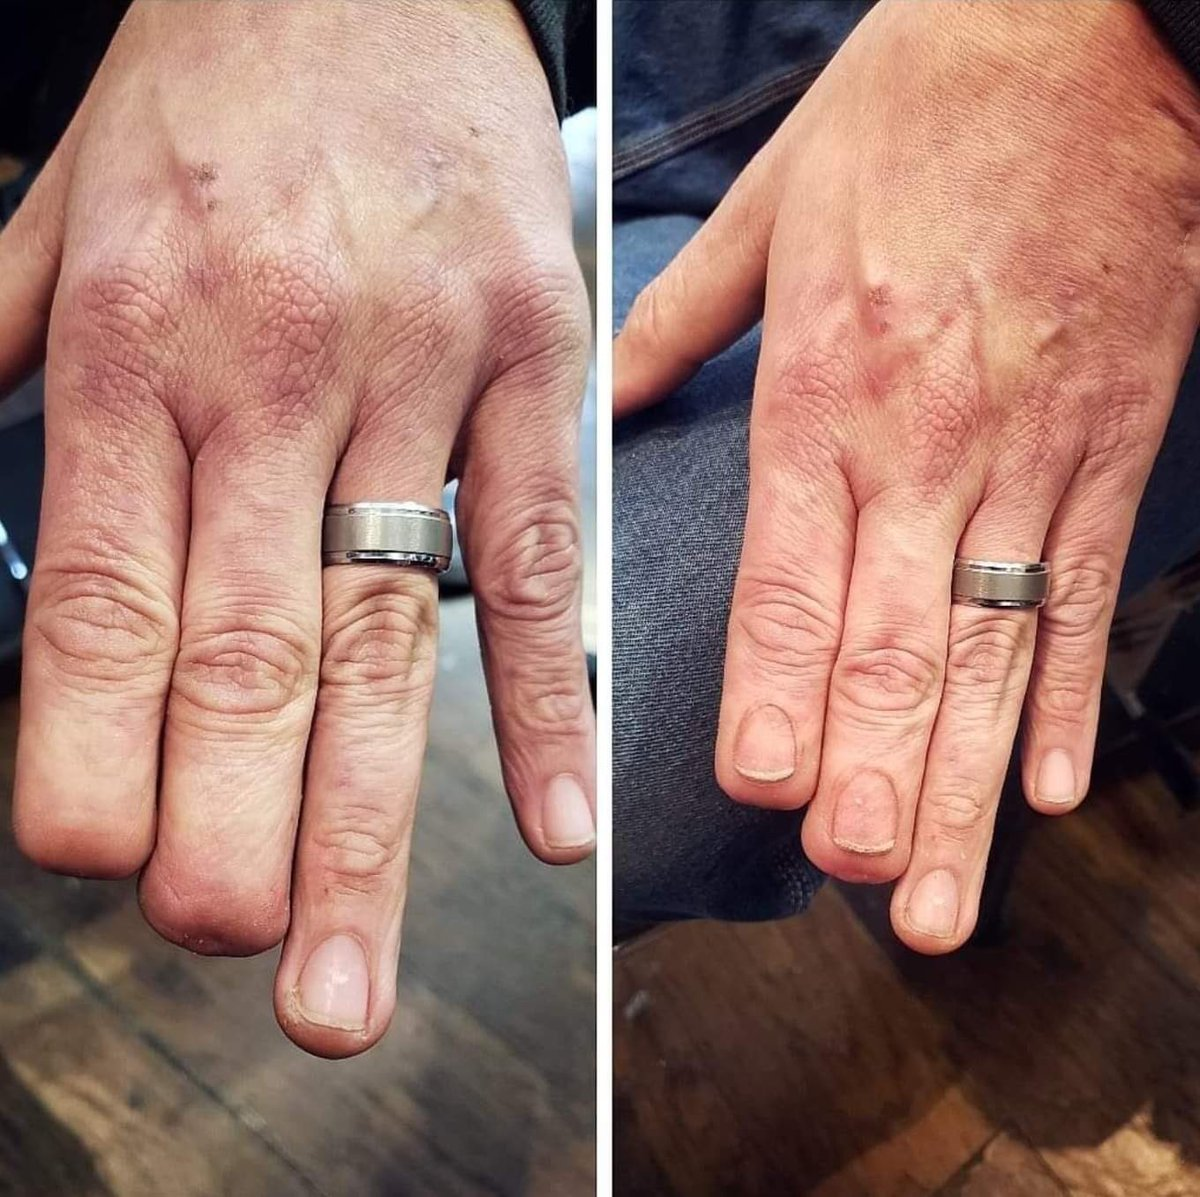 This tattoo artist changed this guys life by tattooing finger nails on his amputated index and middle finger what do y'all think about this?